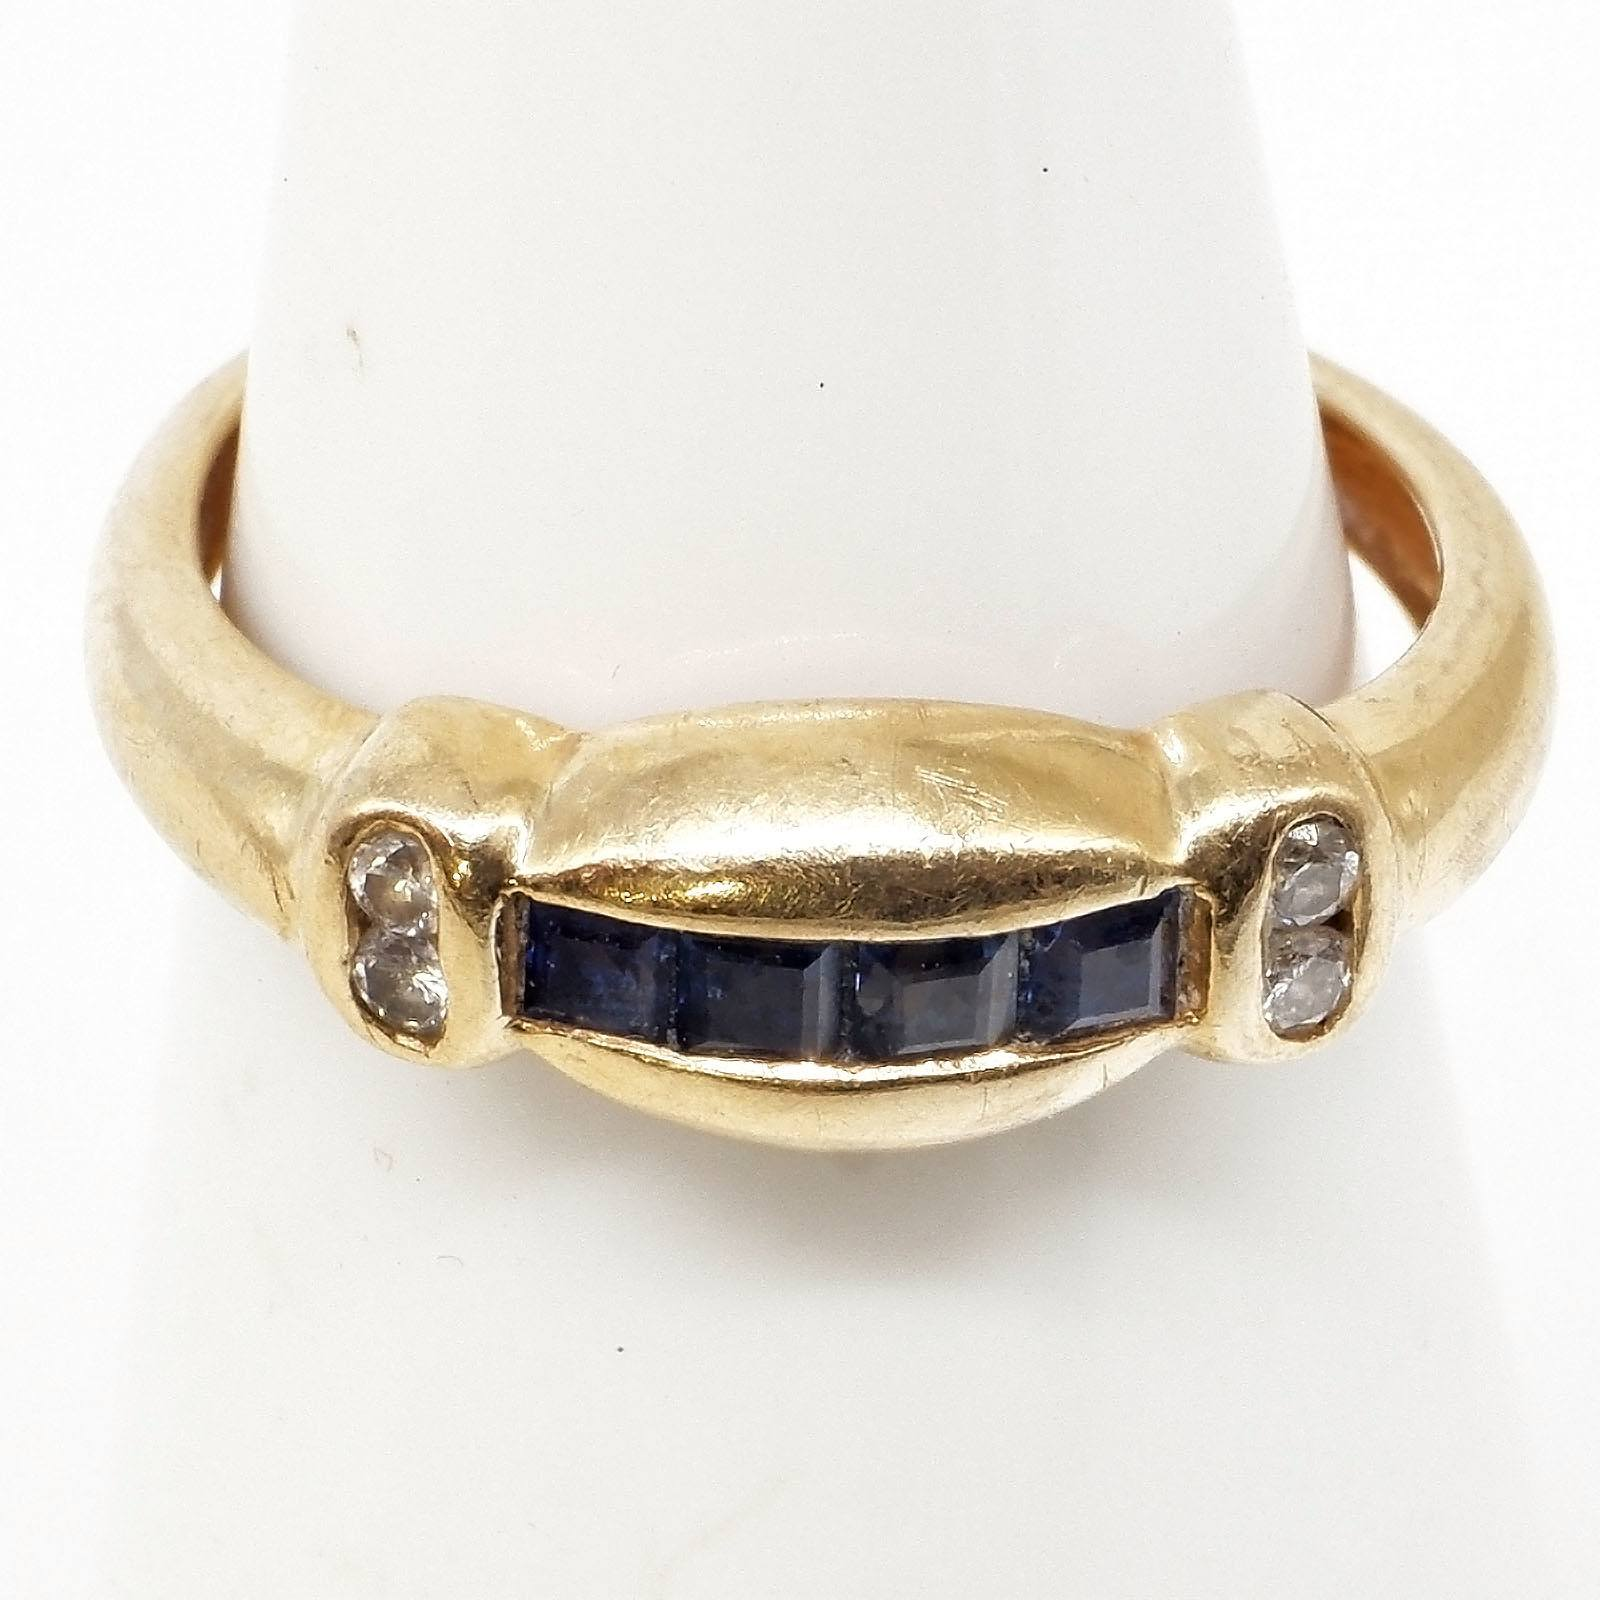 '14ct Yellow Gold Ring with Four Carre Cut Blue Sapphires and Four Round Brilliant Cut Diamonds, 2.1g'